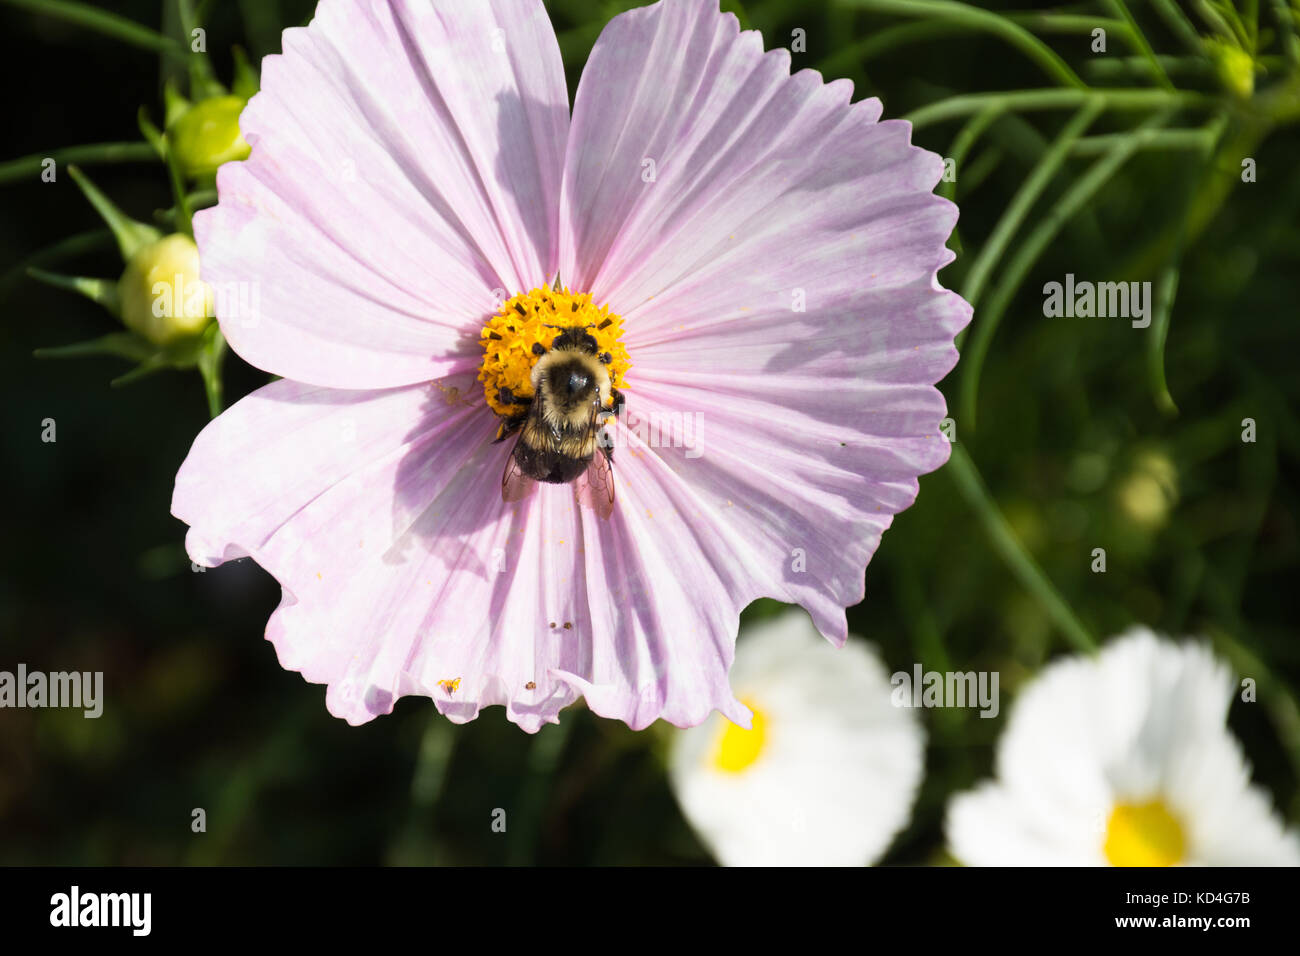 Close up of a bumble bee gathering pollen in a pink flower. A spider is also on a petal near the center of the flower. - Stock Image